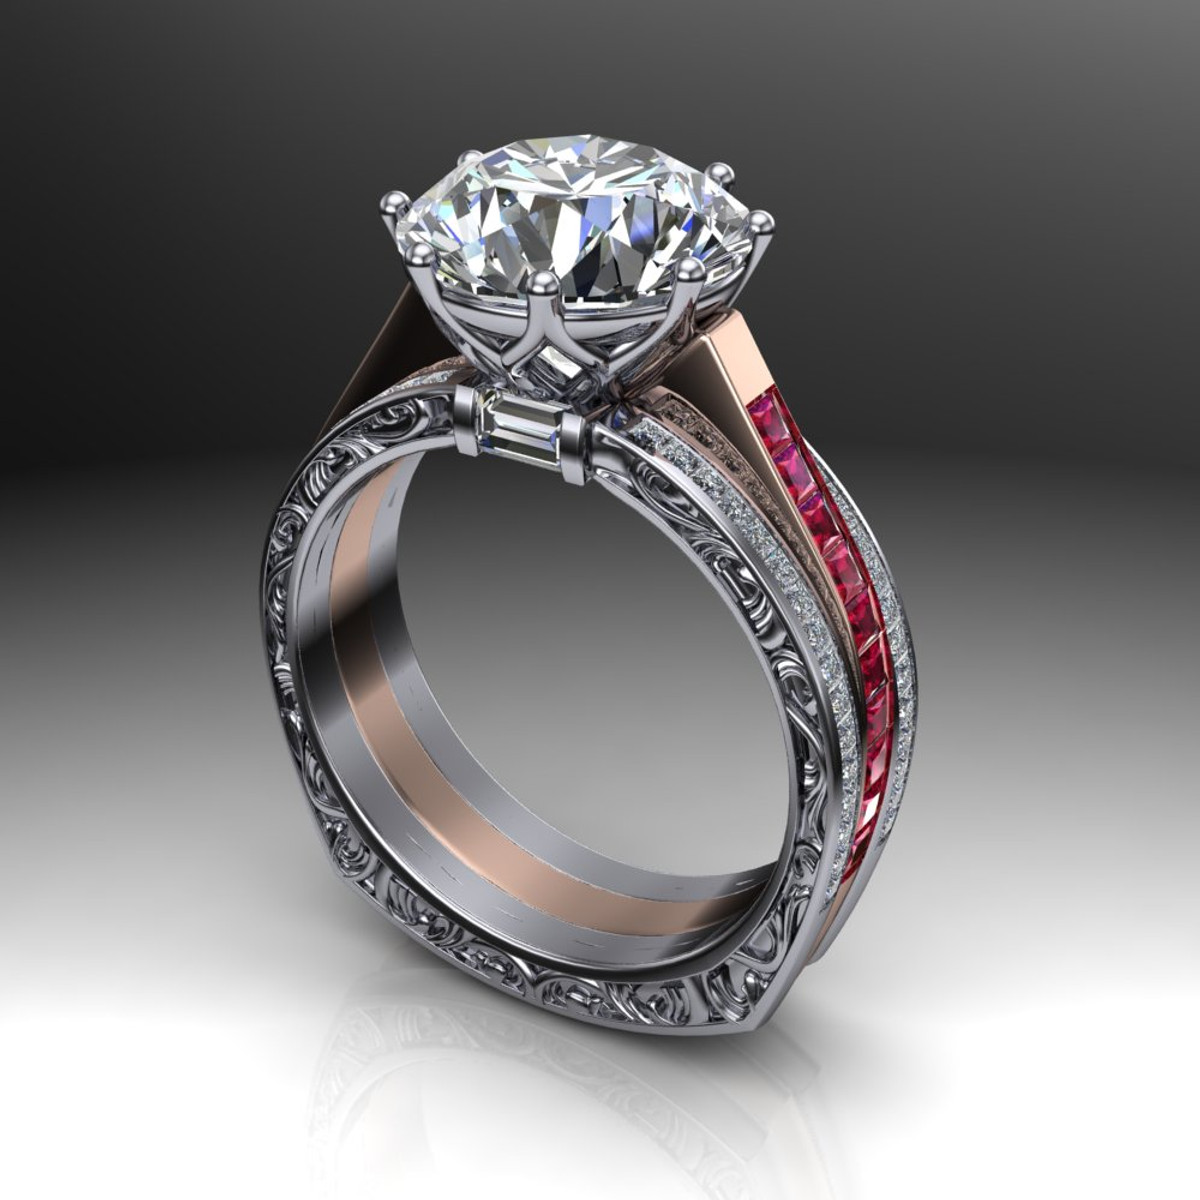 ring rings diamond on hand diamantbilds carat hd